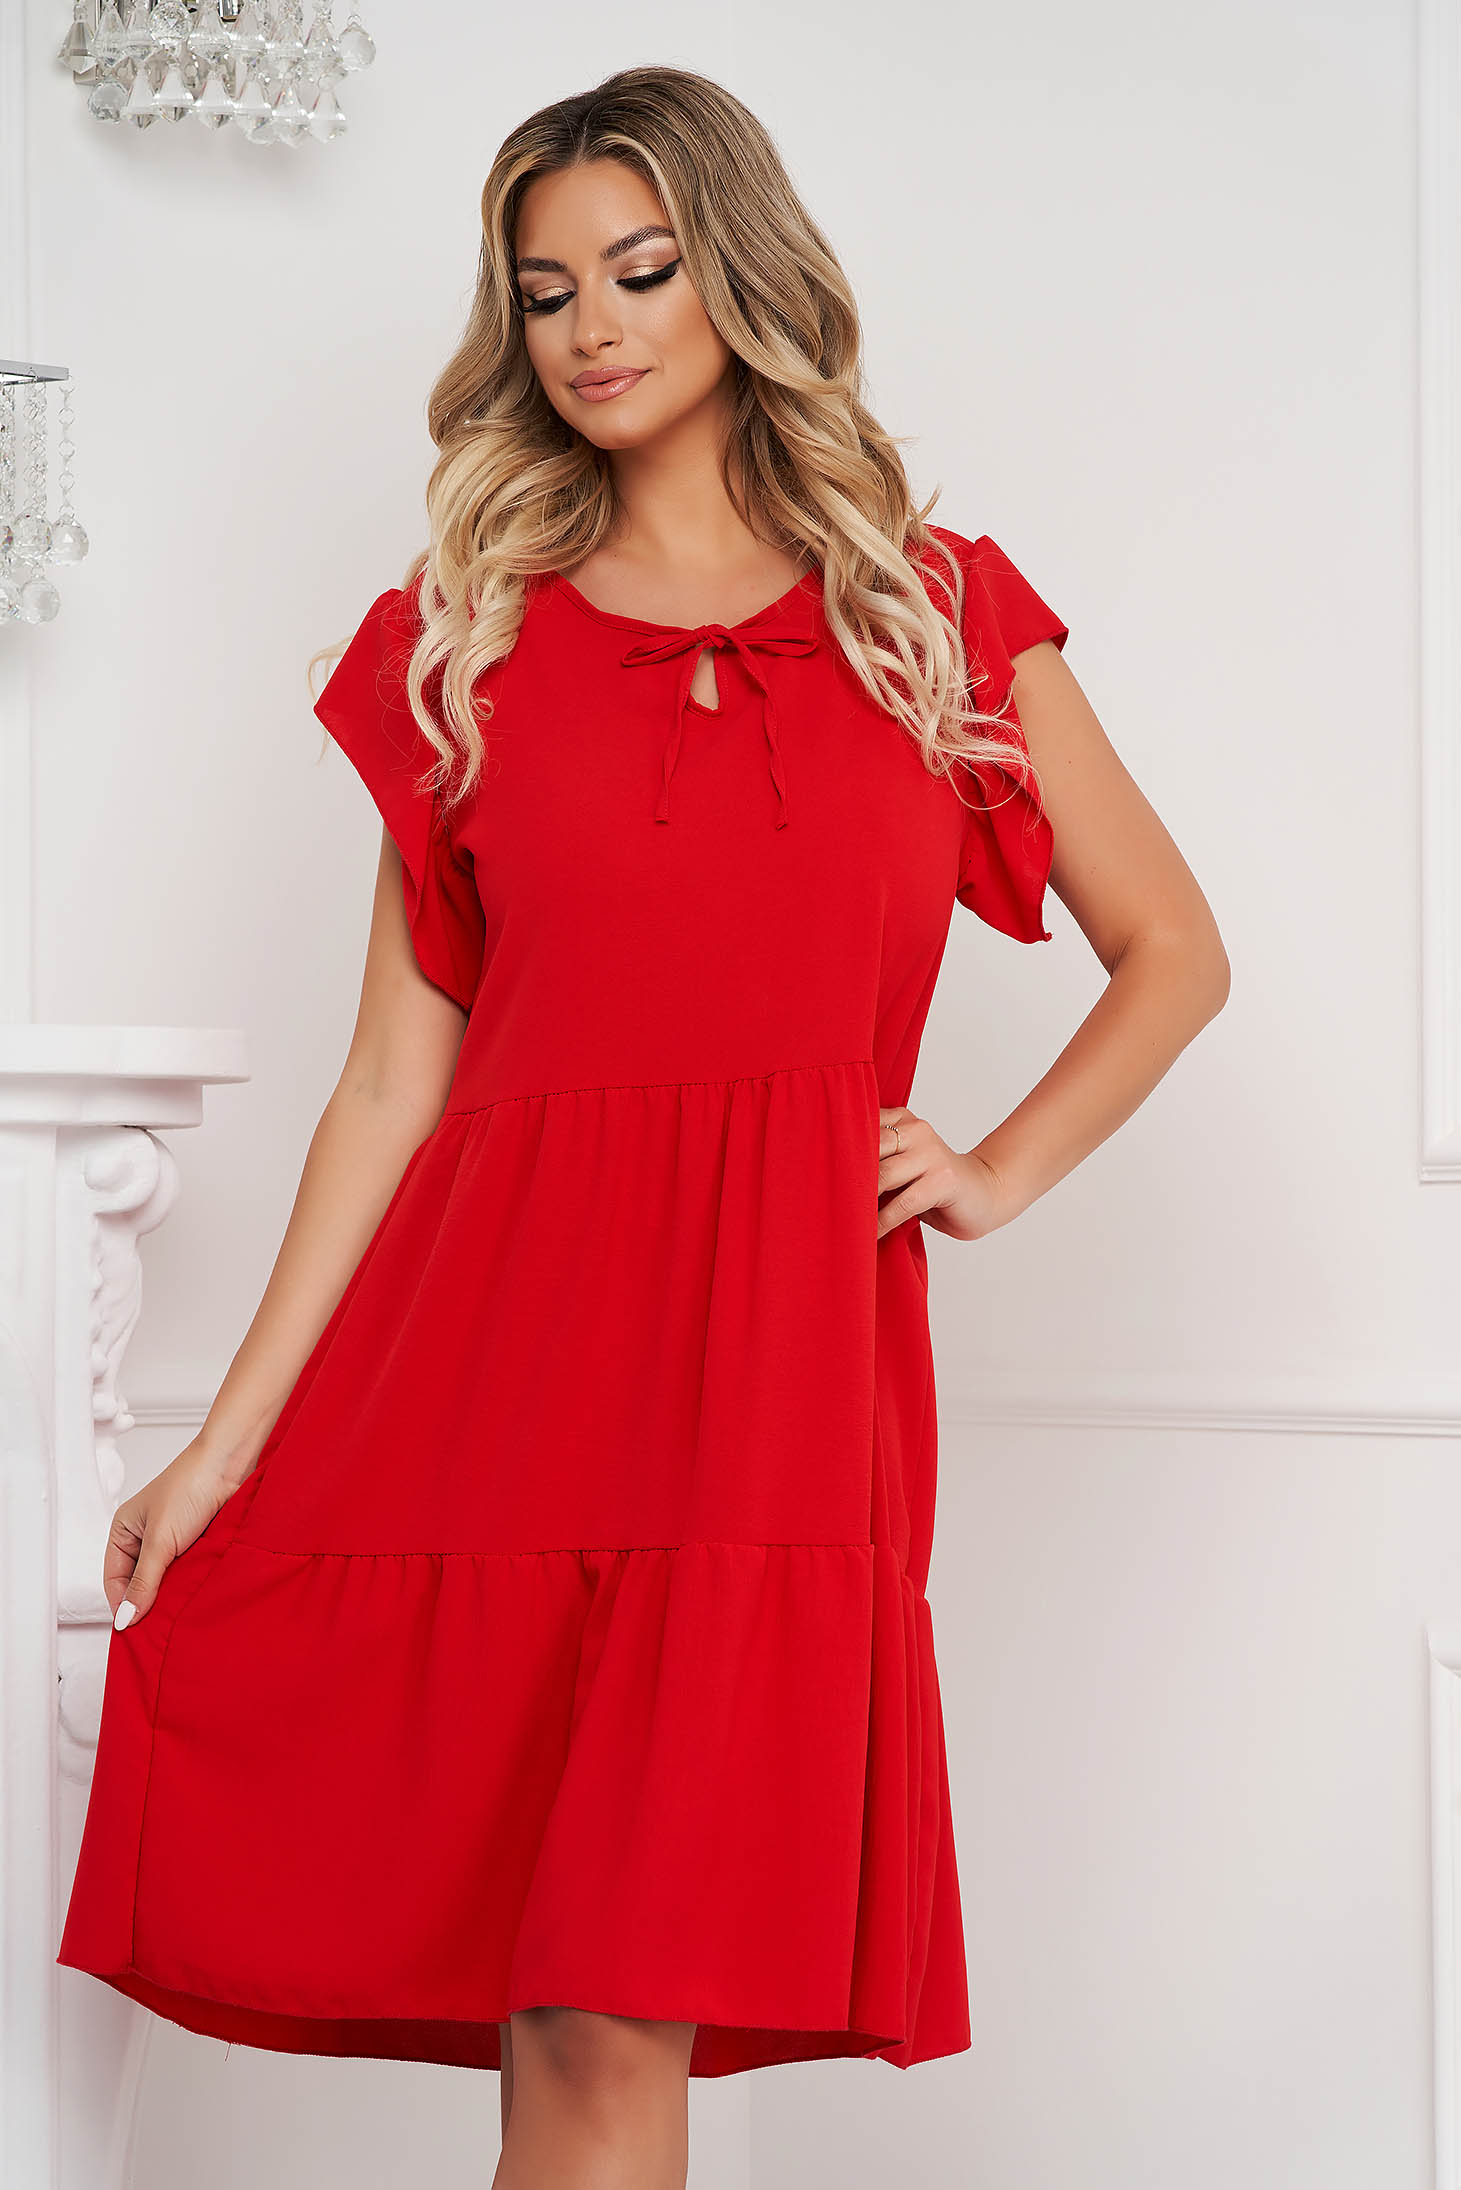 Red dress midi loose fit airy fabric with ruffle details